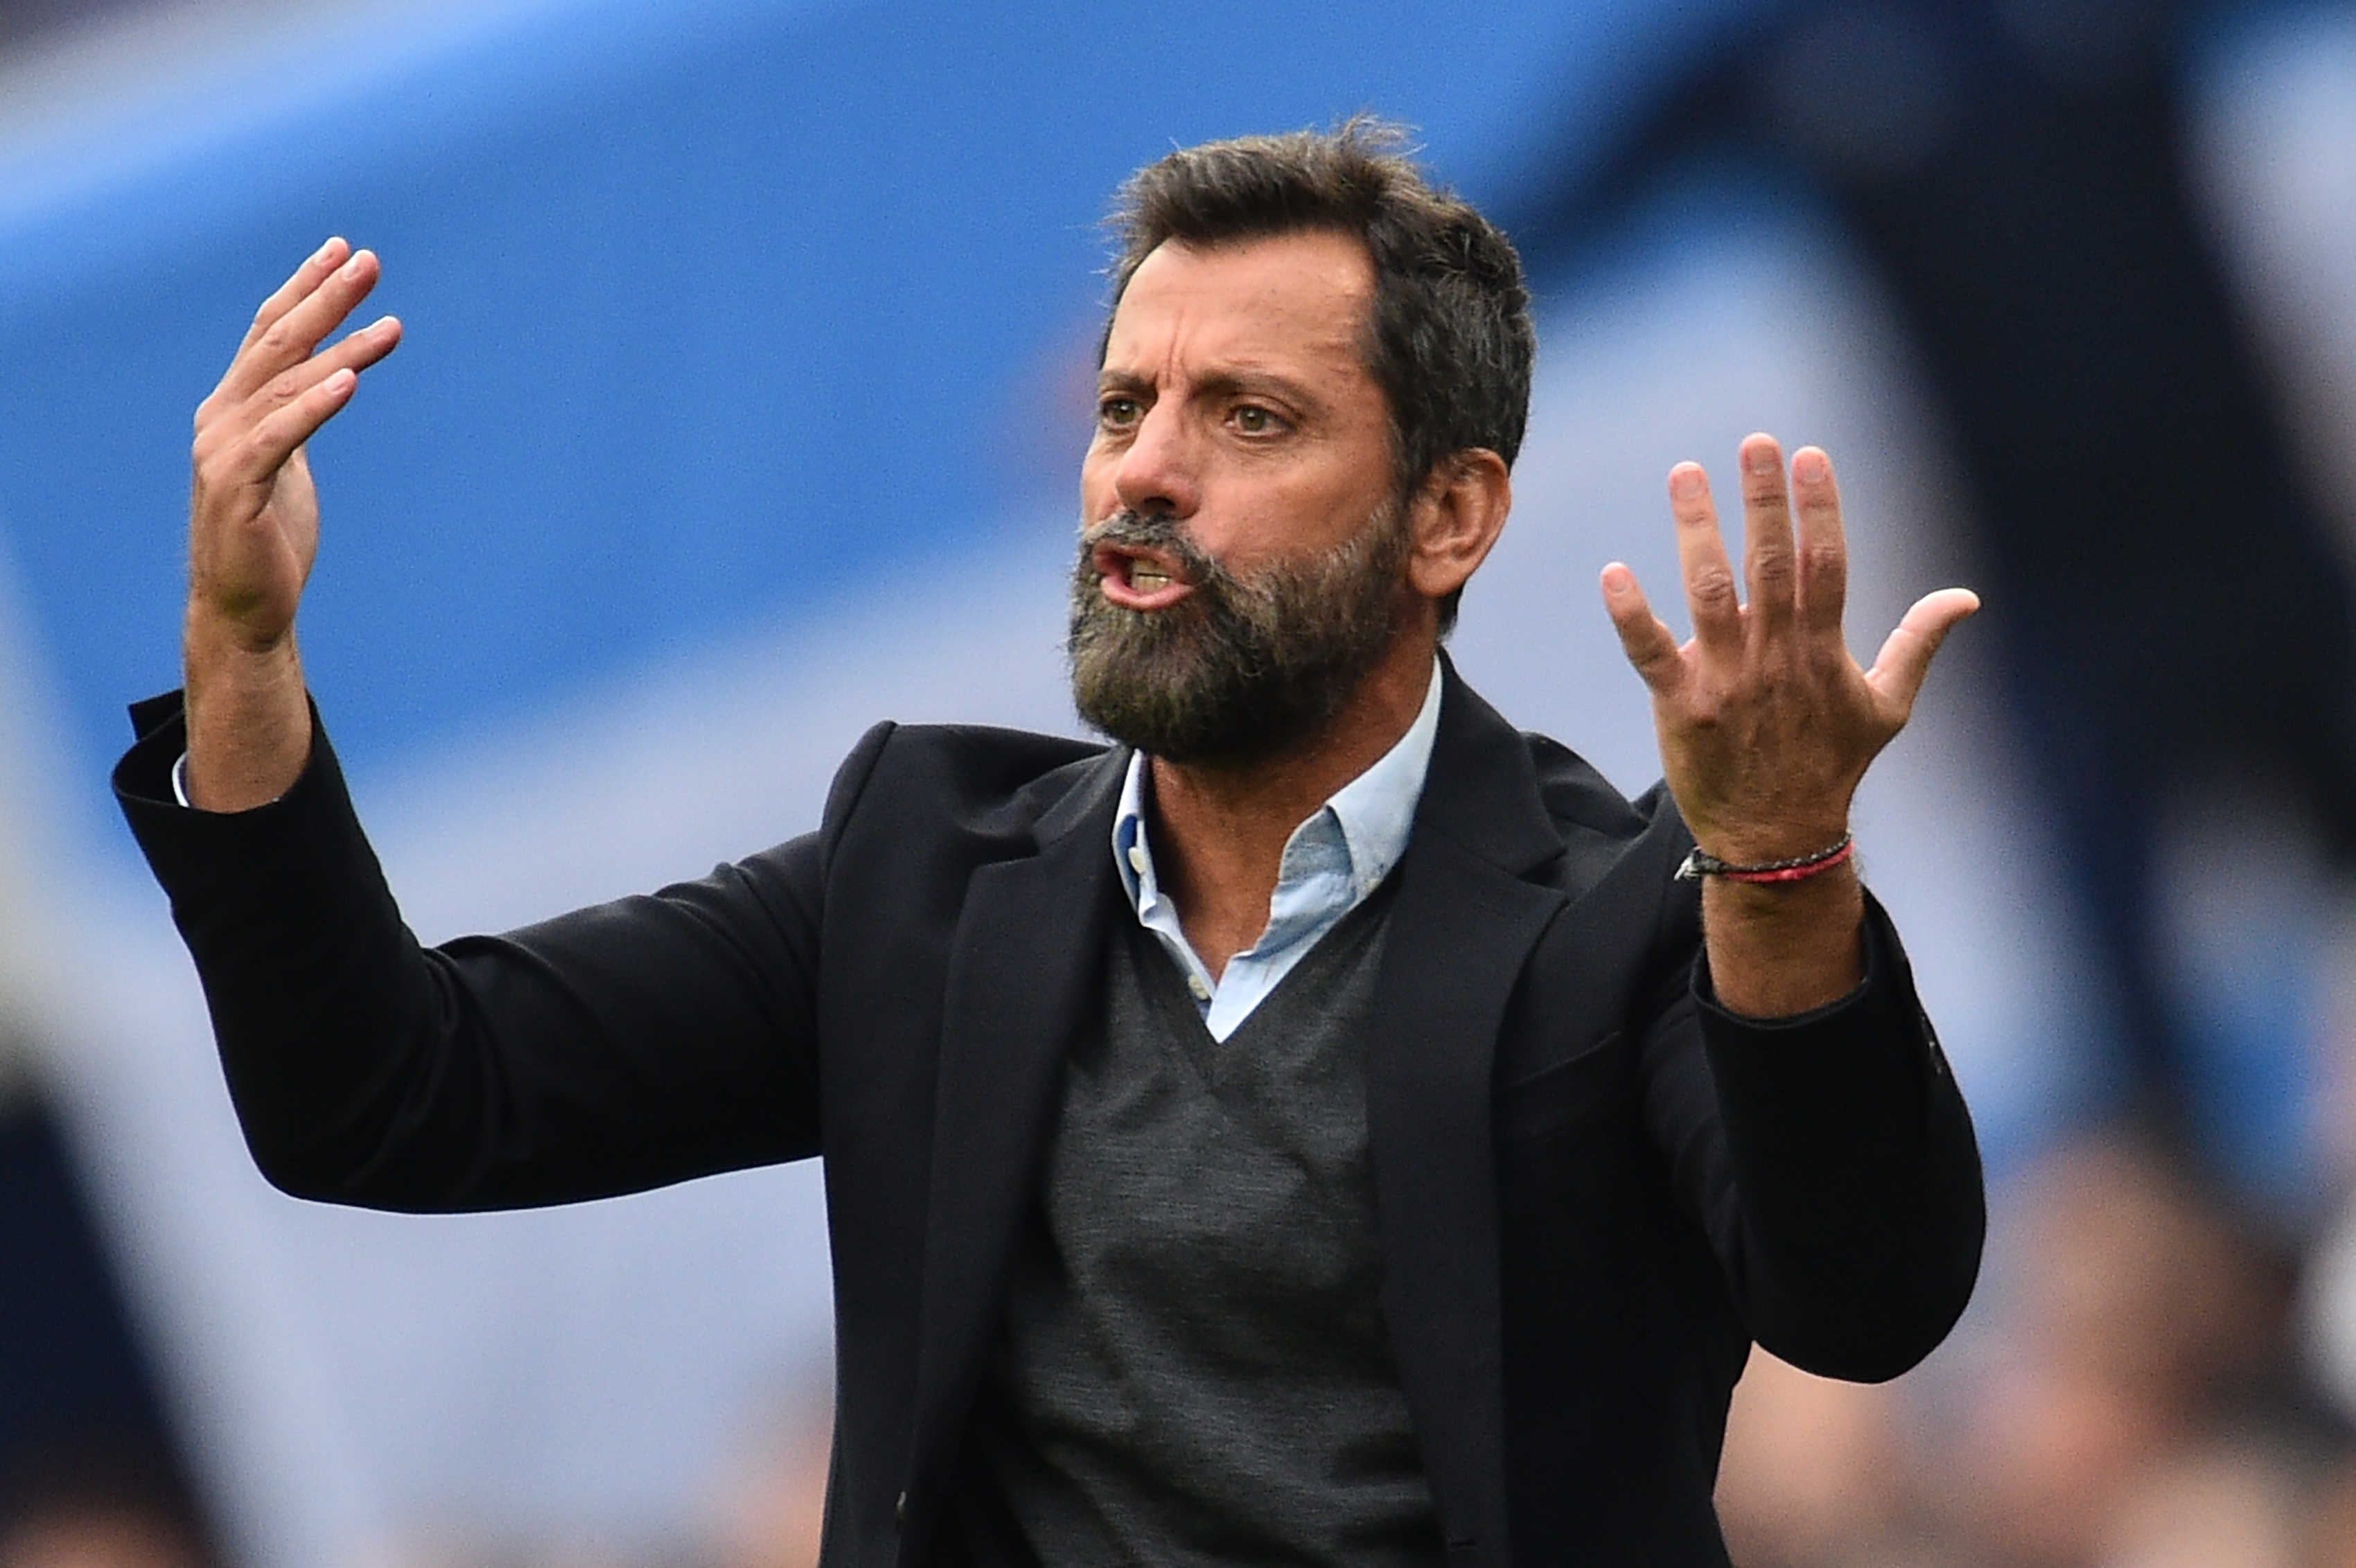 Watford's demise: why blisful ignorance has cost the Hornets dearly - opinion